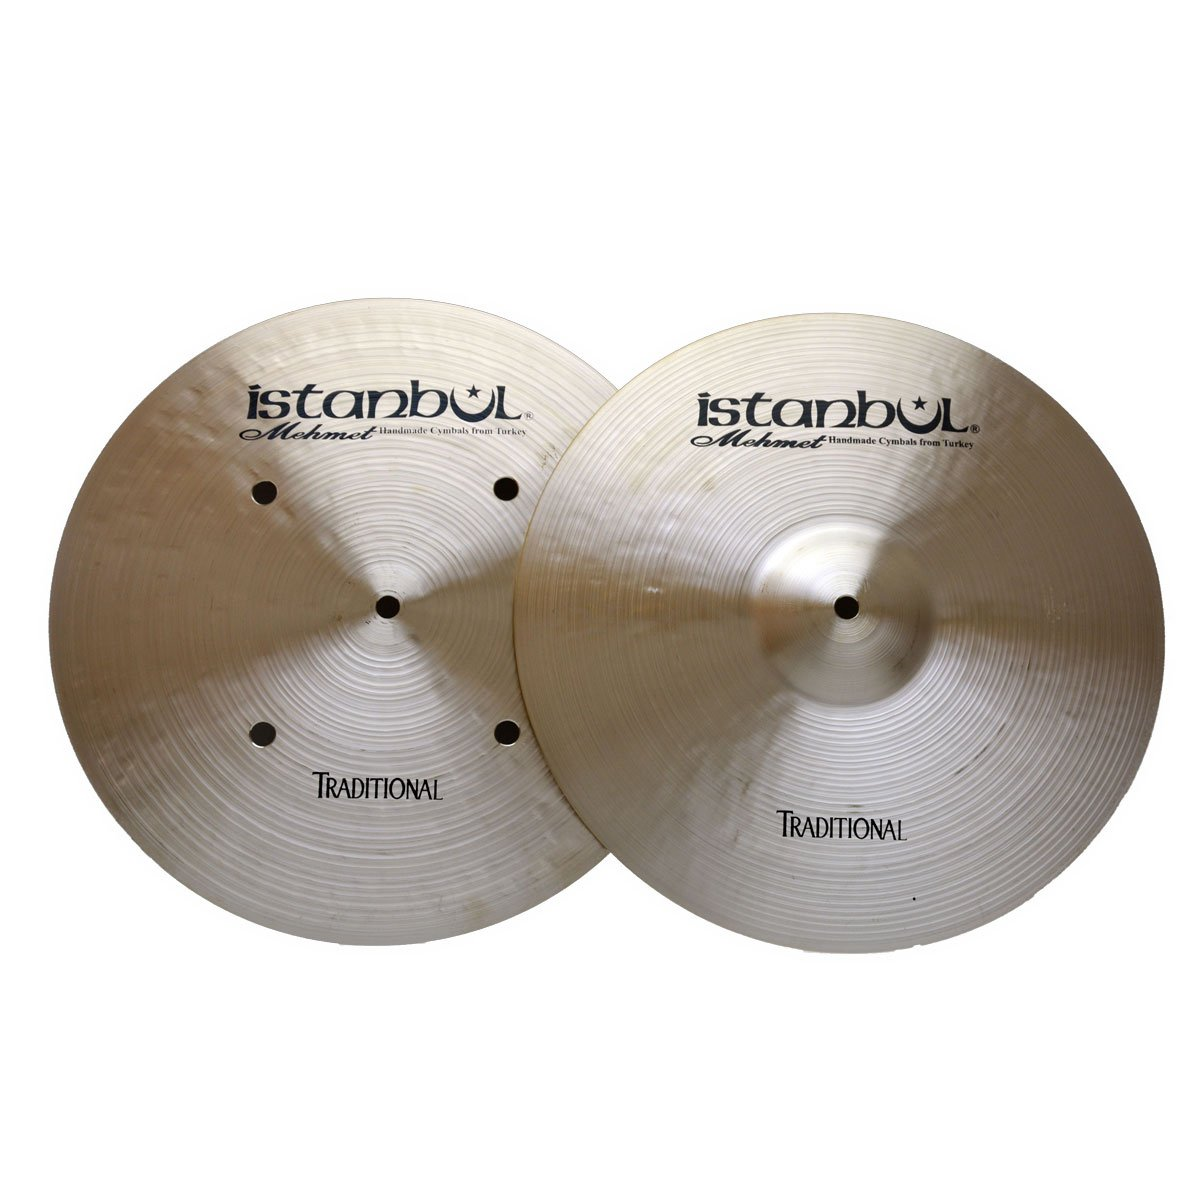 Istanbul Mehmet Cymbals Traditional Series Hi-Hat Flat Bottom Cymbals TOP&BOTTOM HHFH- (13